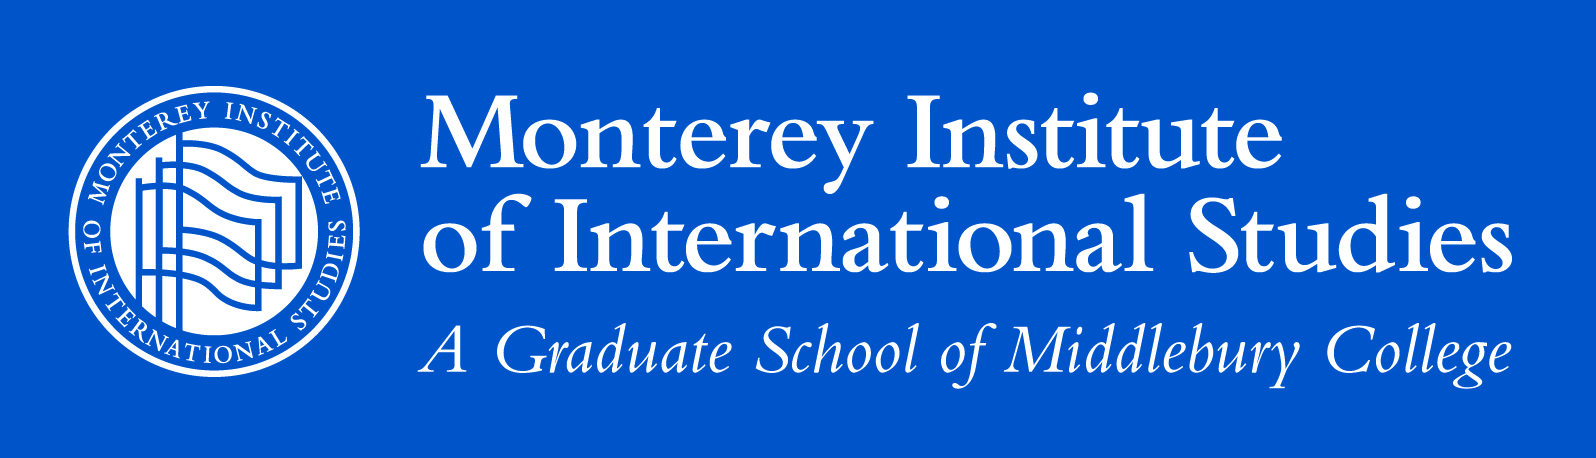 Middlebury Institute of International Studies at Monterey ...